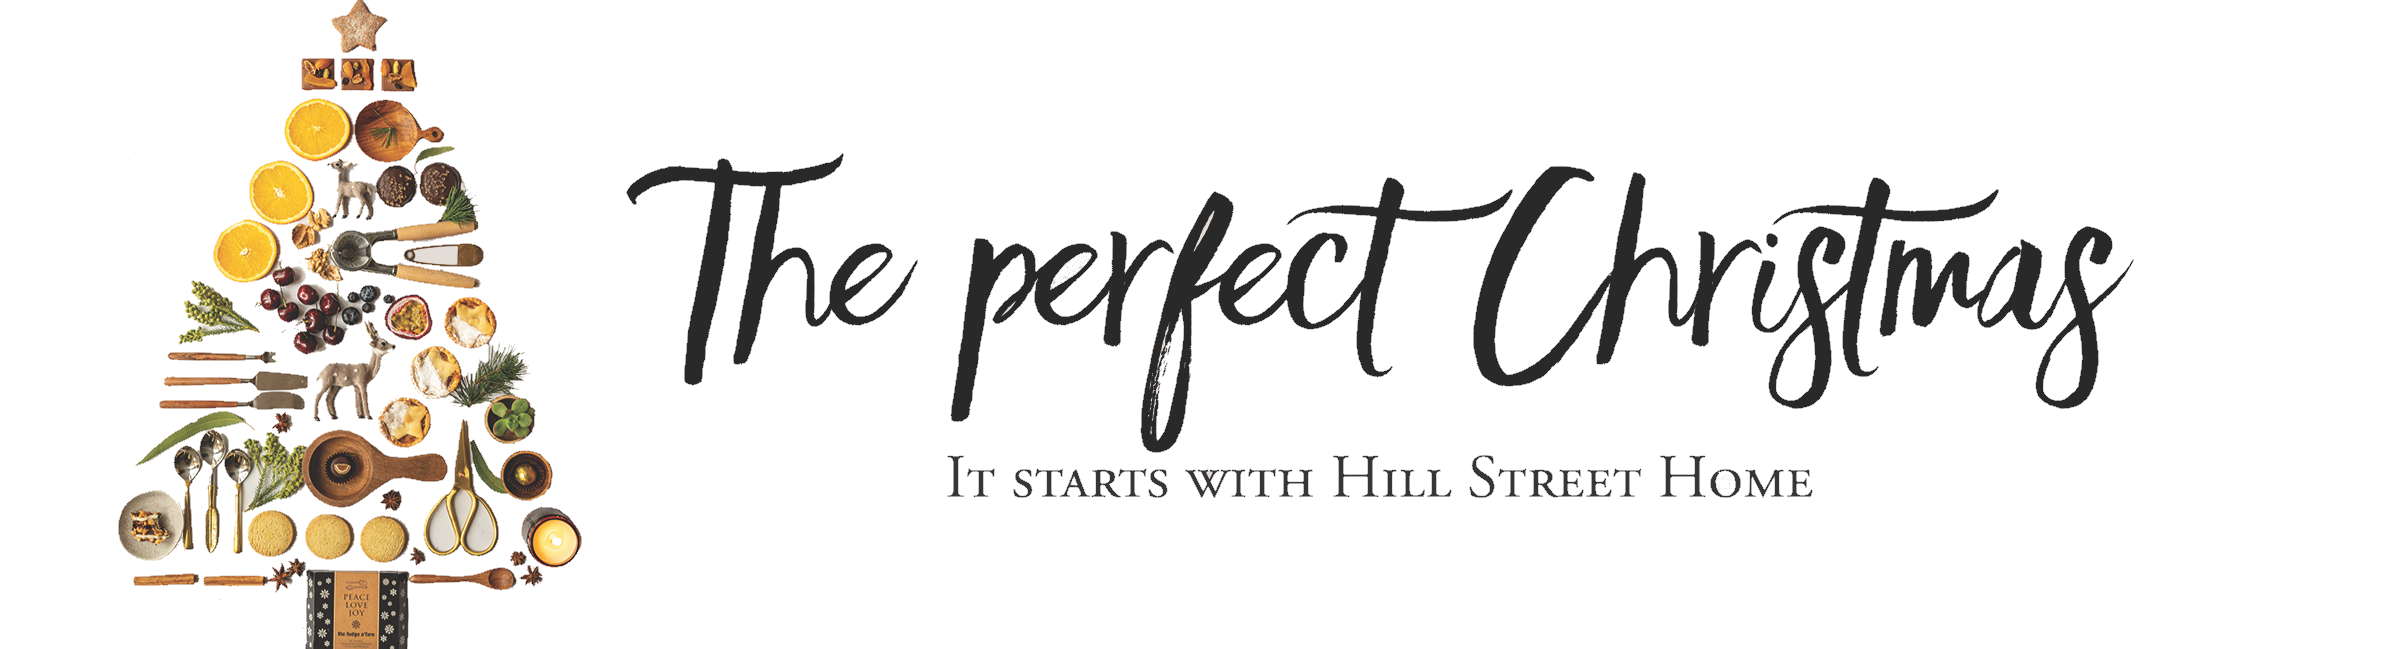 The perfect Christmas - it starts with Hill Street Home